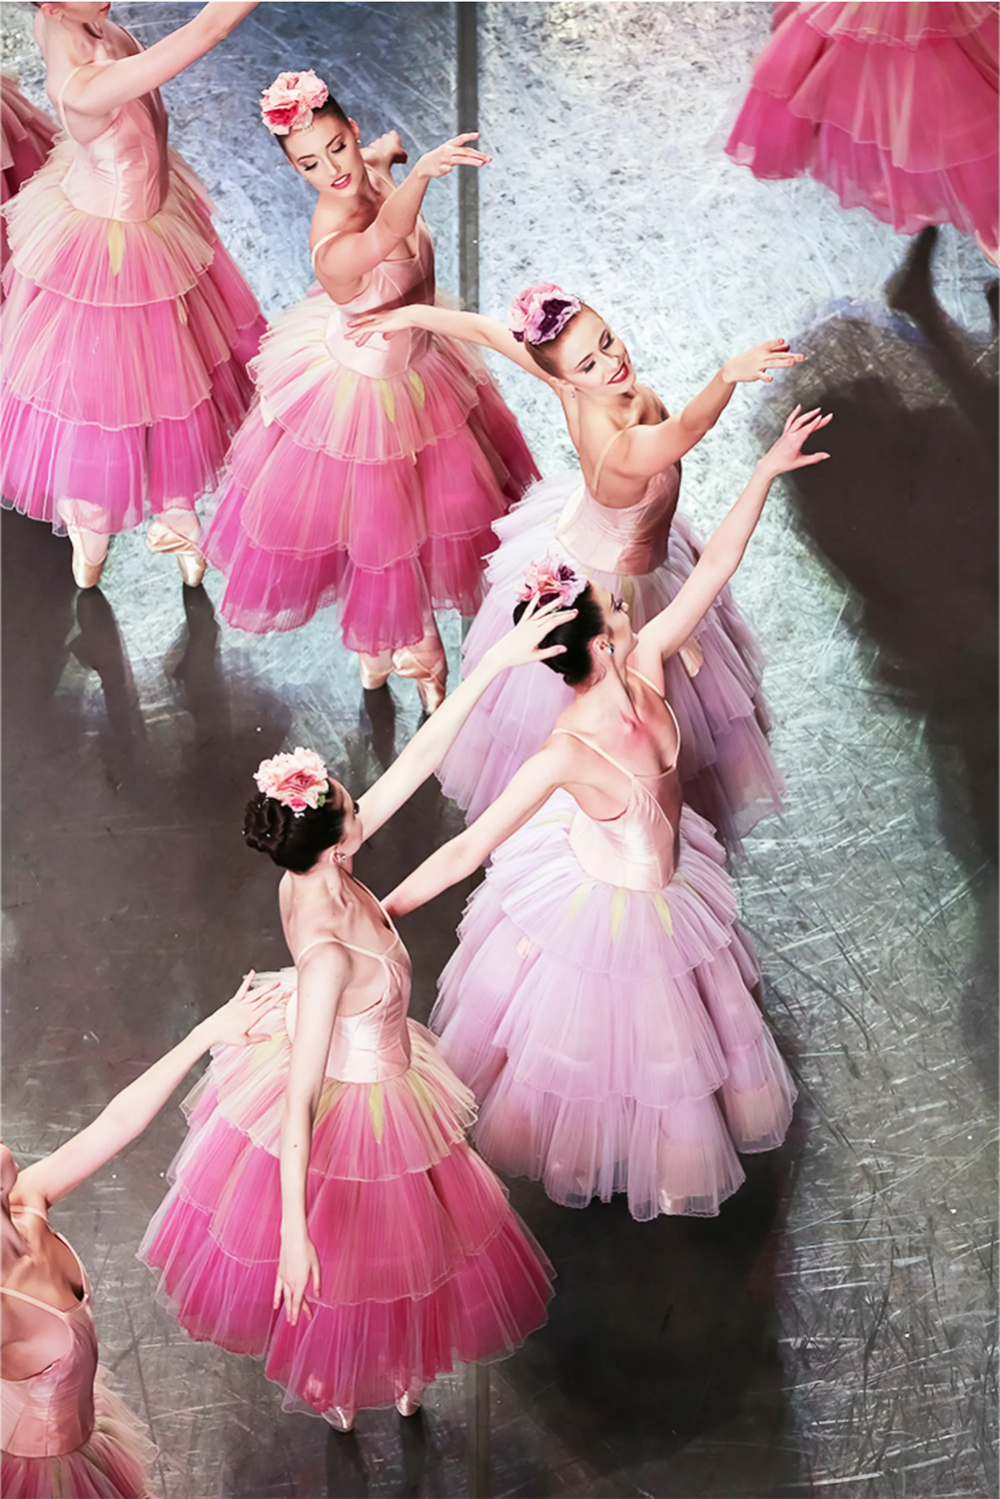 Act One: Behind the Scenes - The Magic of the Nutcracker